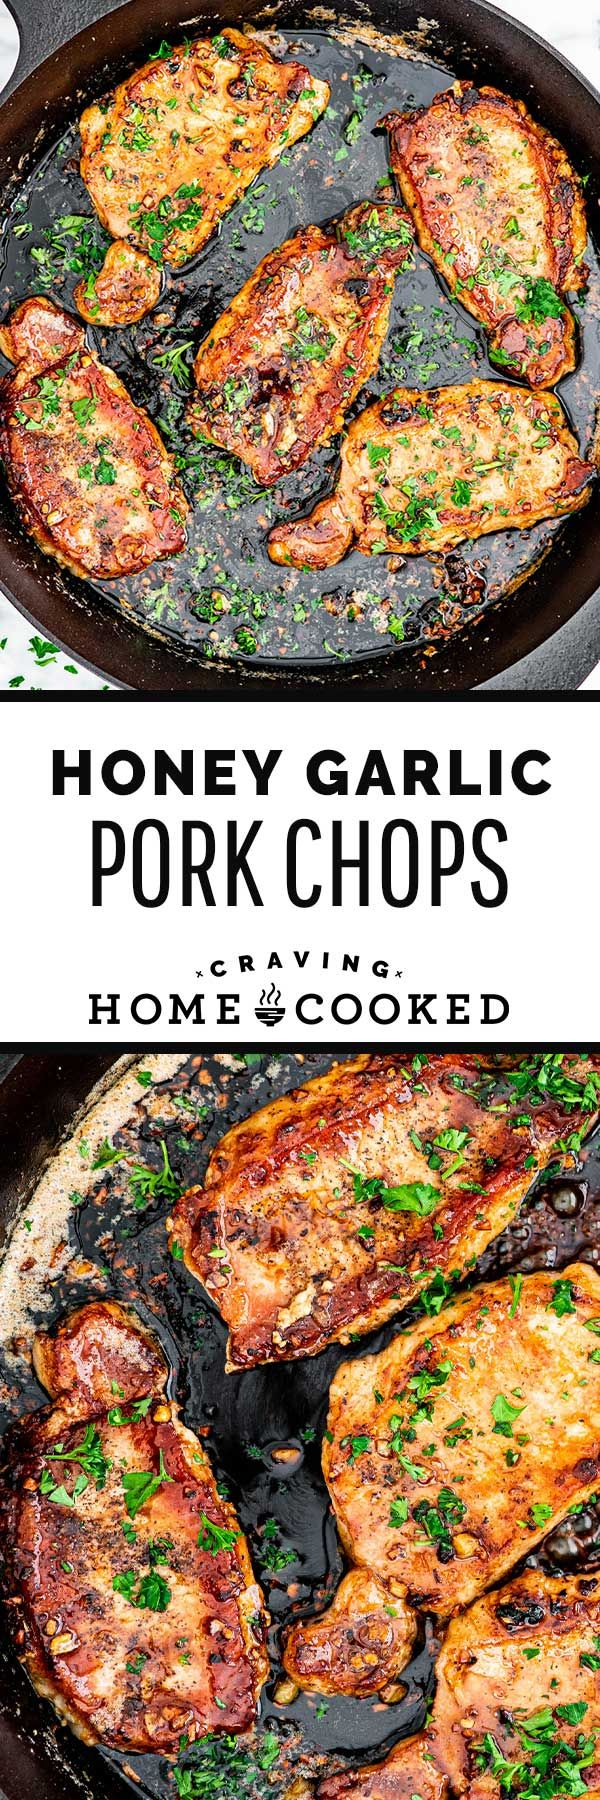 Honey Garlic Pork Chopsare about to become your new favorite weeknight meal. Sweet, savory, and p